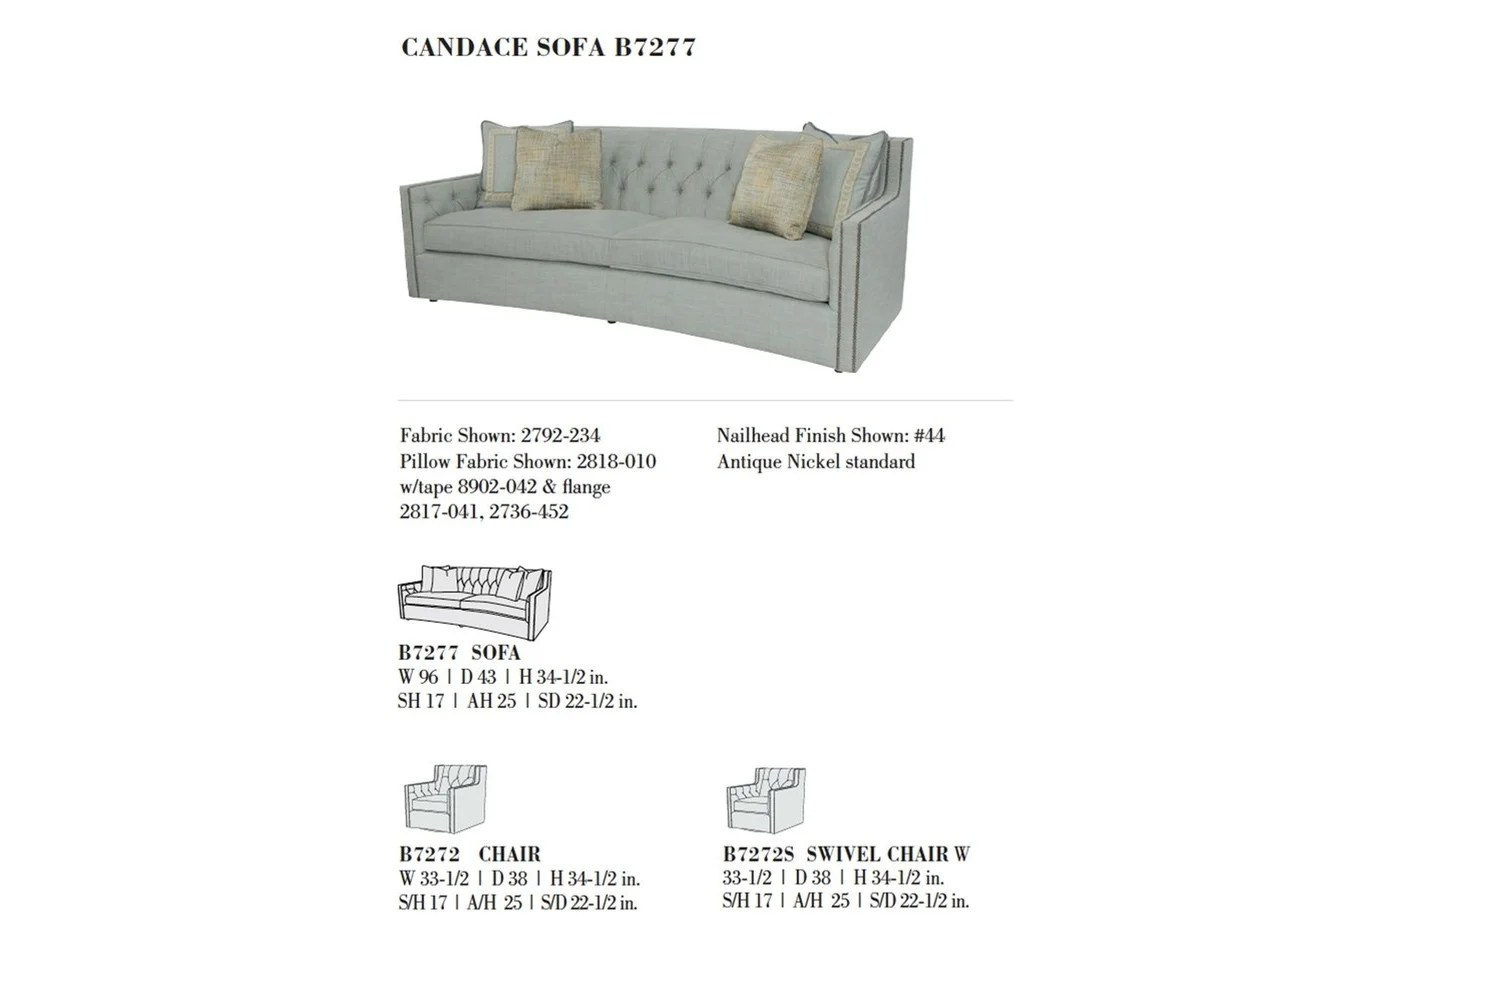 bernhardt cantor leather sofa price navan factory contact candace baci living room